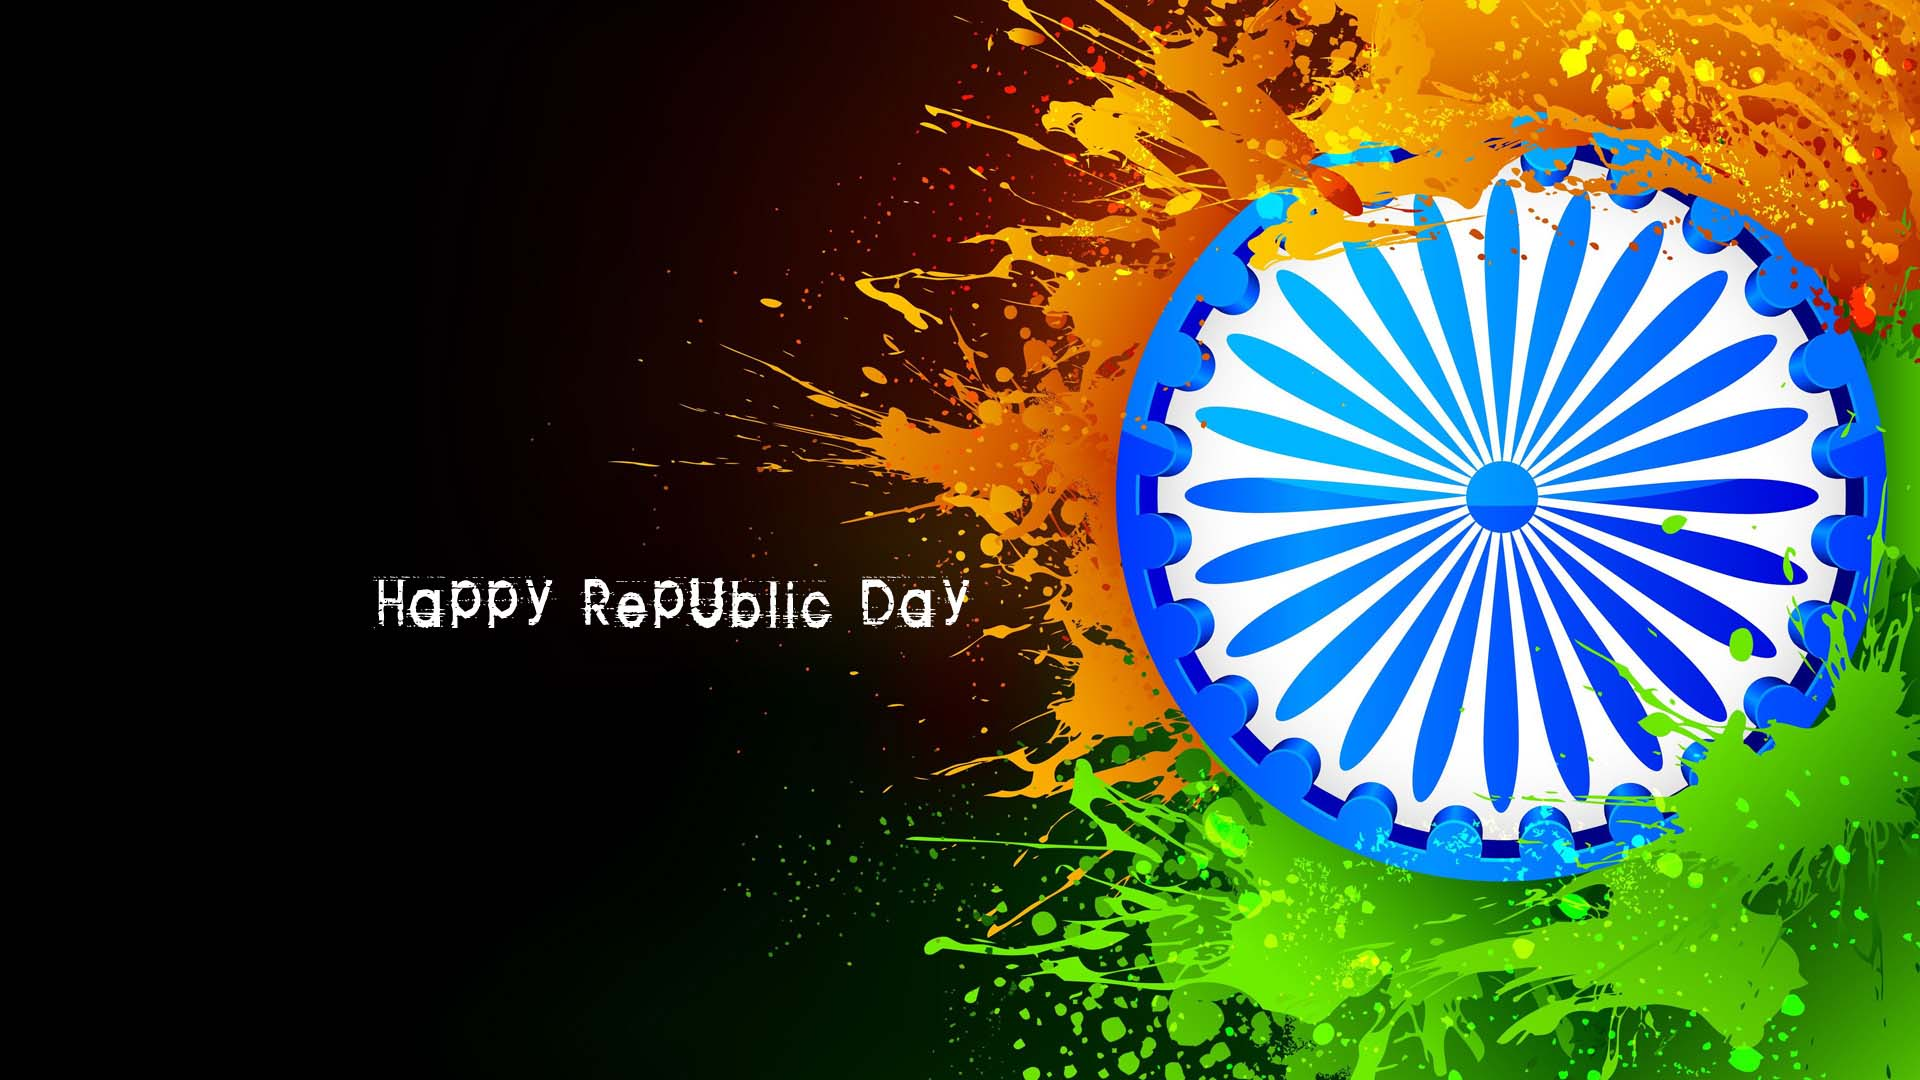 Indian Flag Wallpaper For Happy Republic Day Hd 1366×768